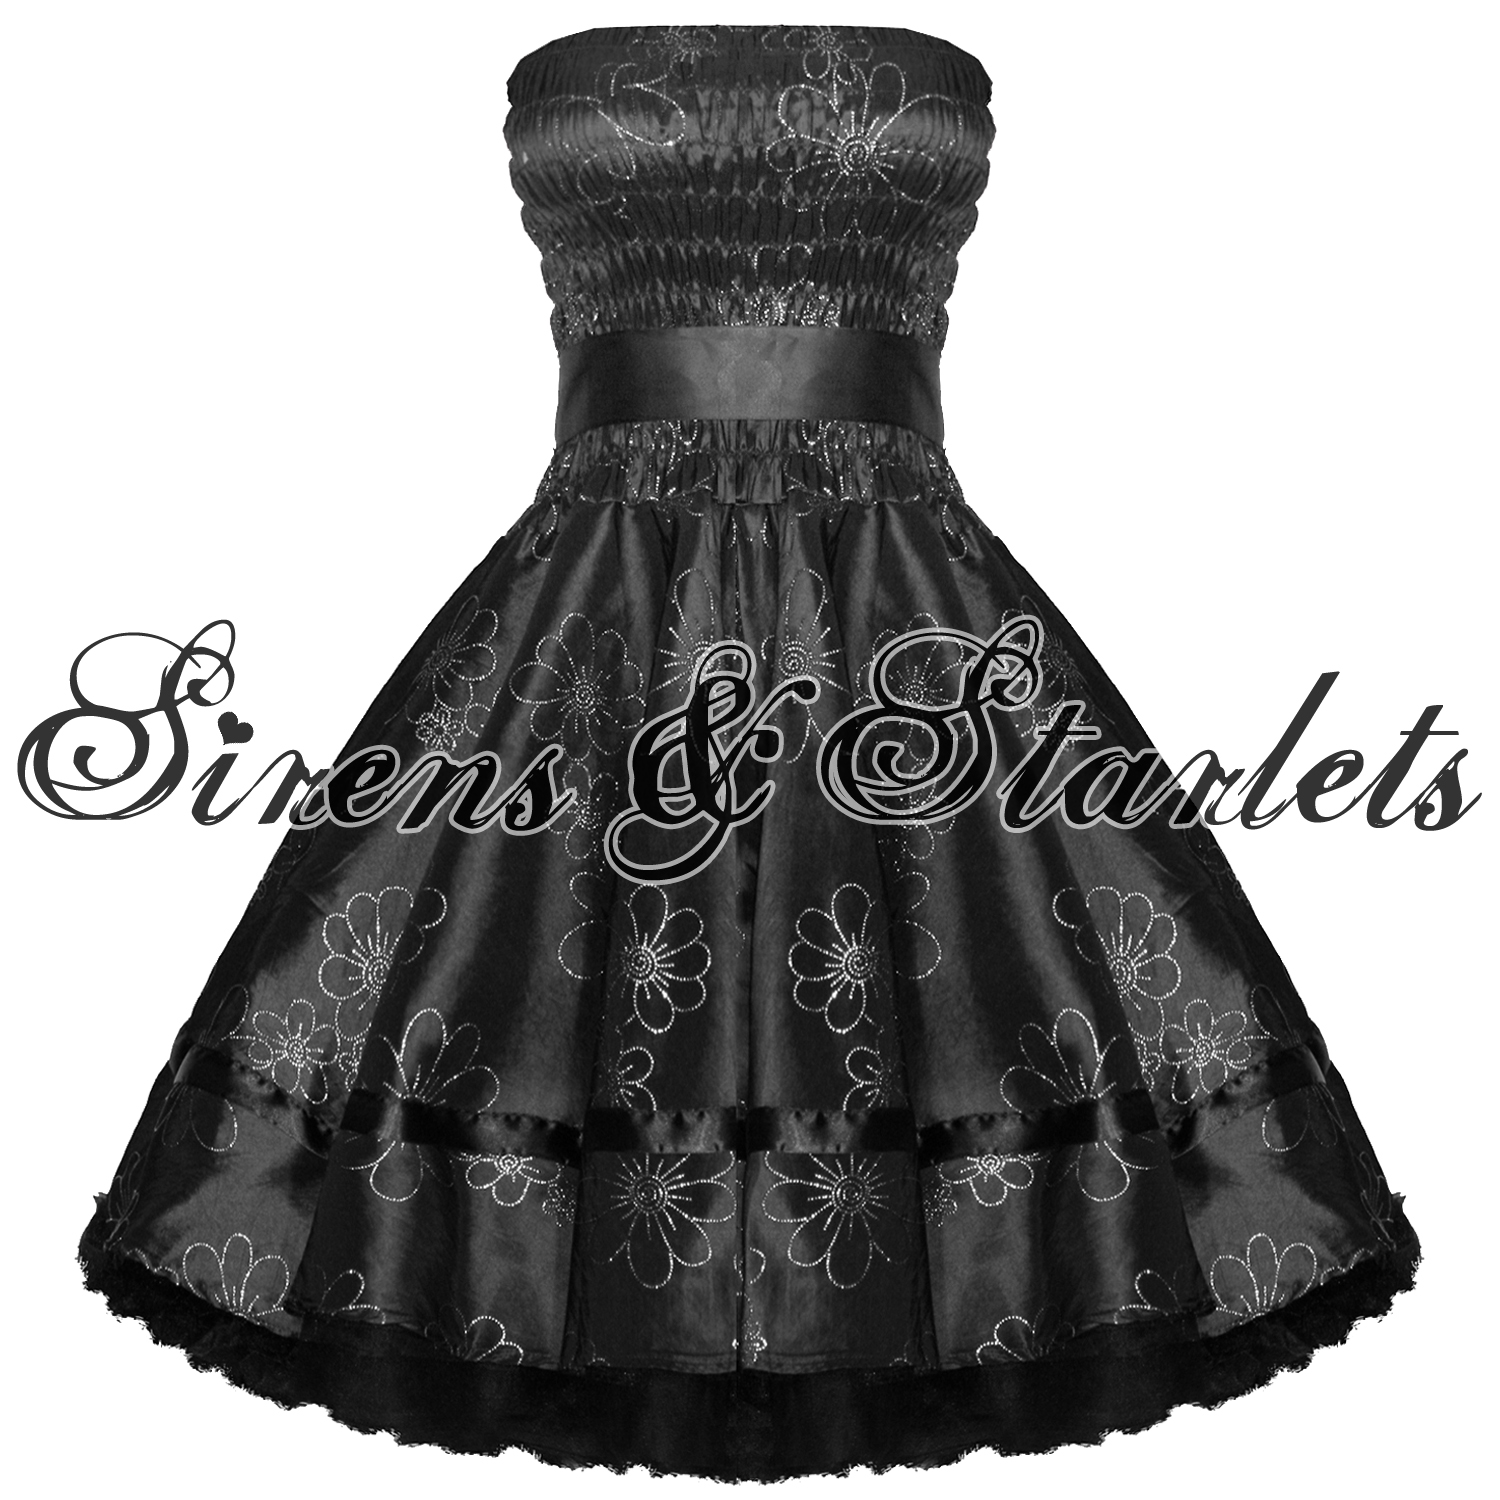 BLACK-FLORAL-GLITTER-50S-PINUP-PARTY-PROM-EVENING-DRESS